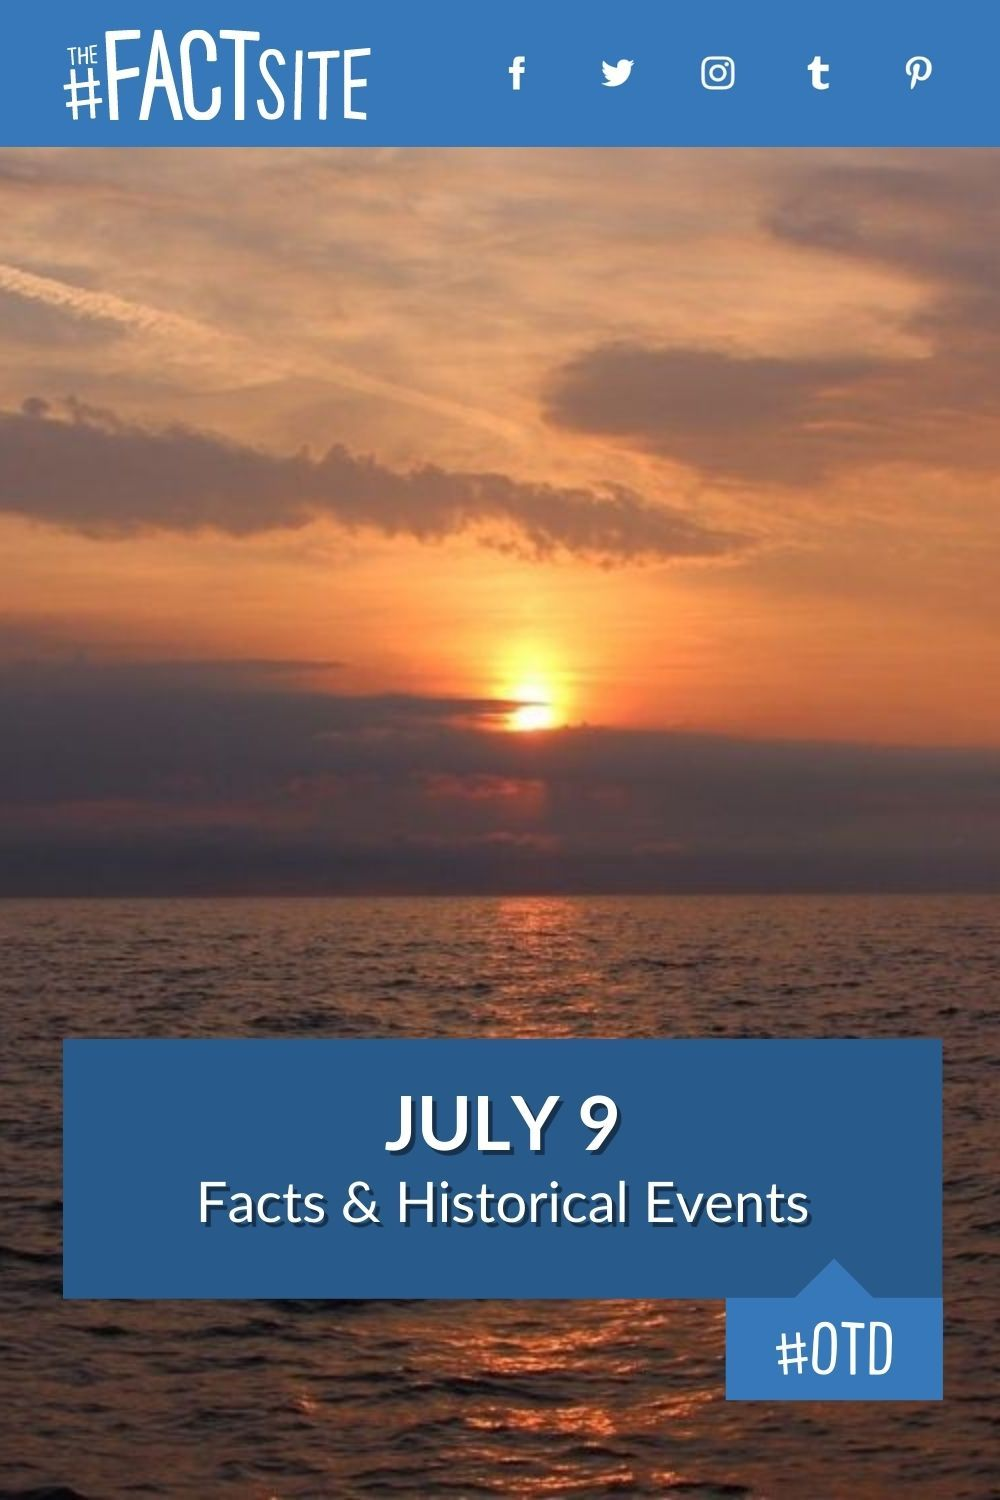 Facts & Historic Events That Happened on July 9